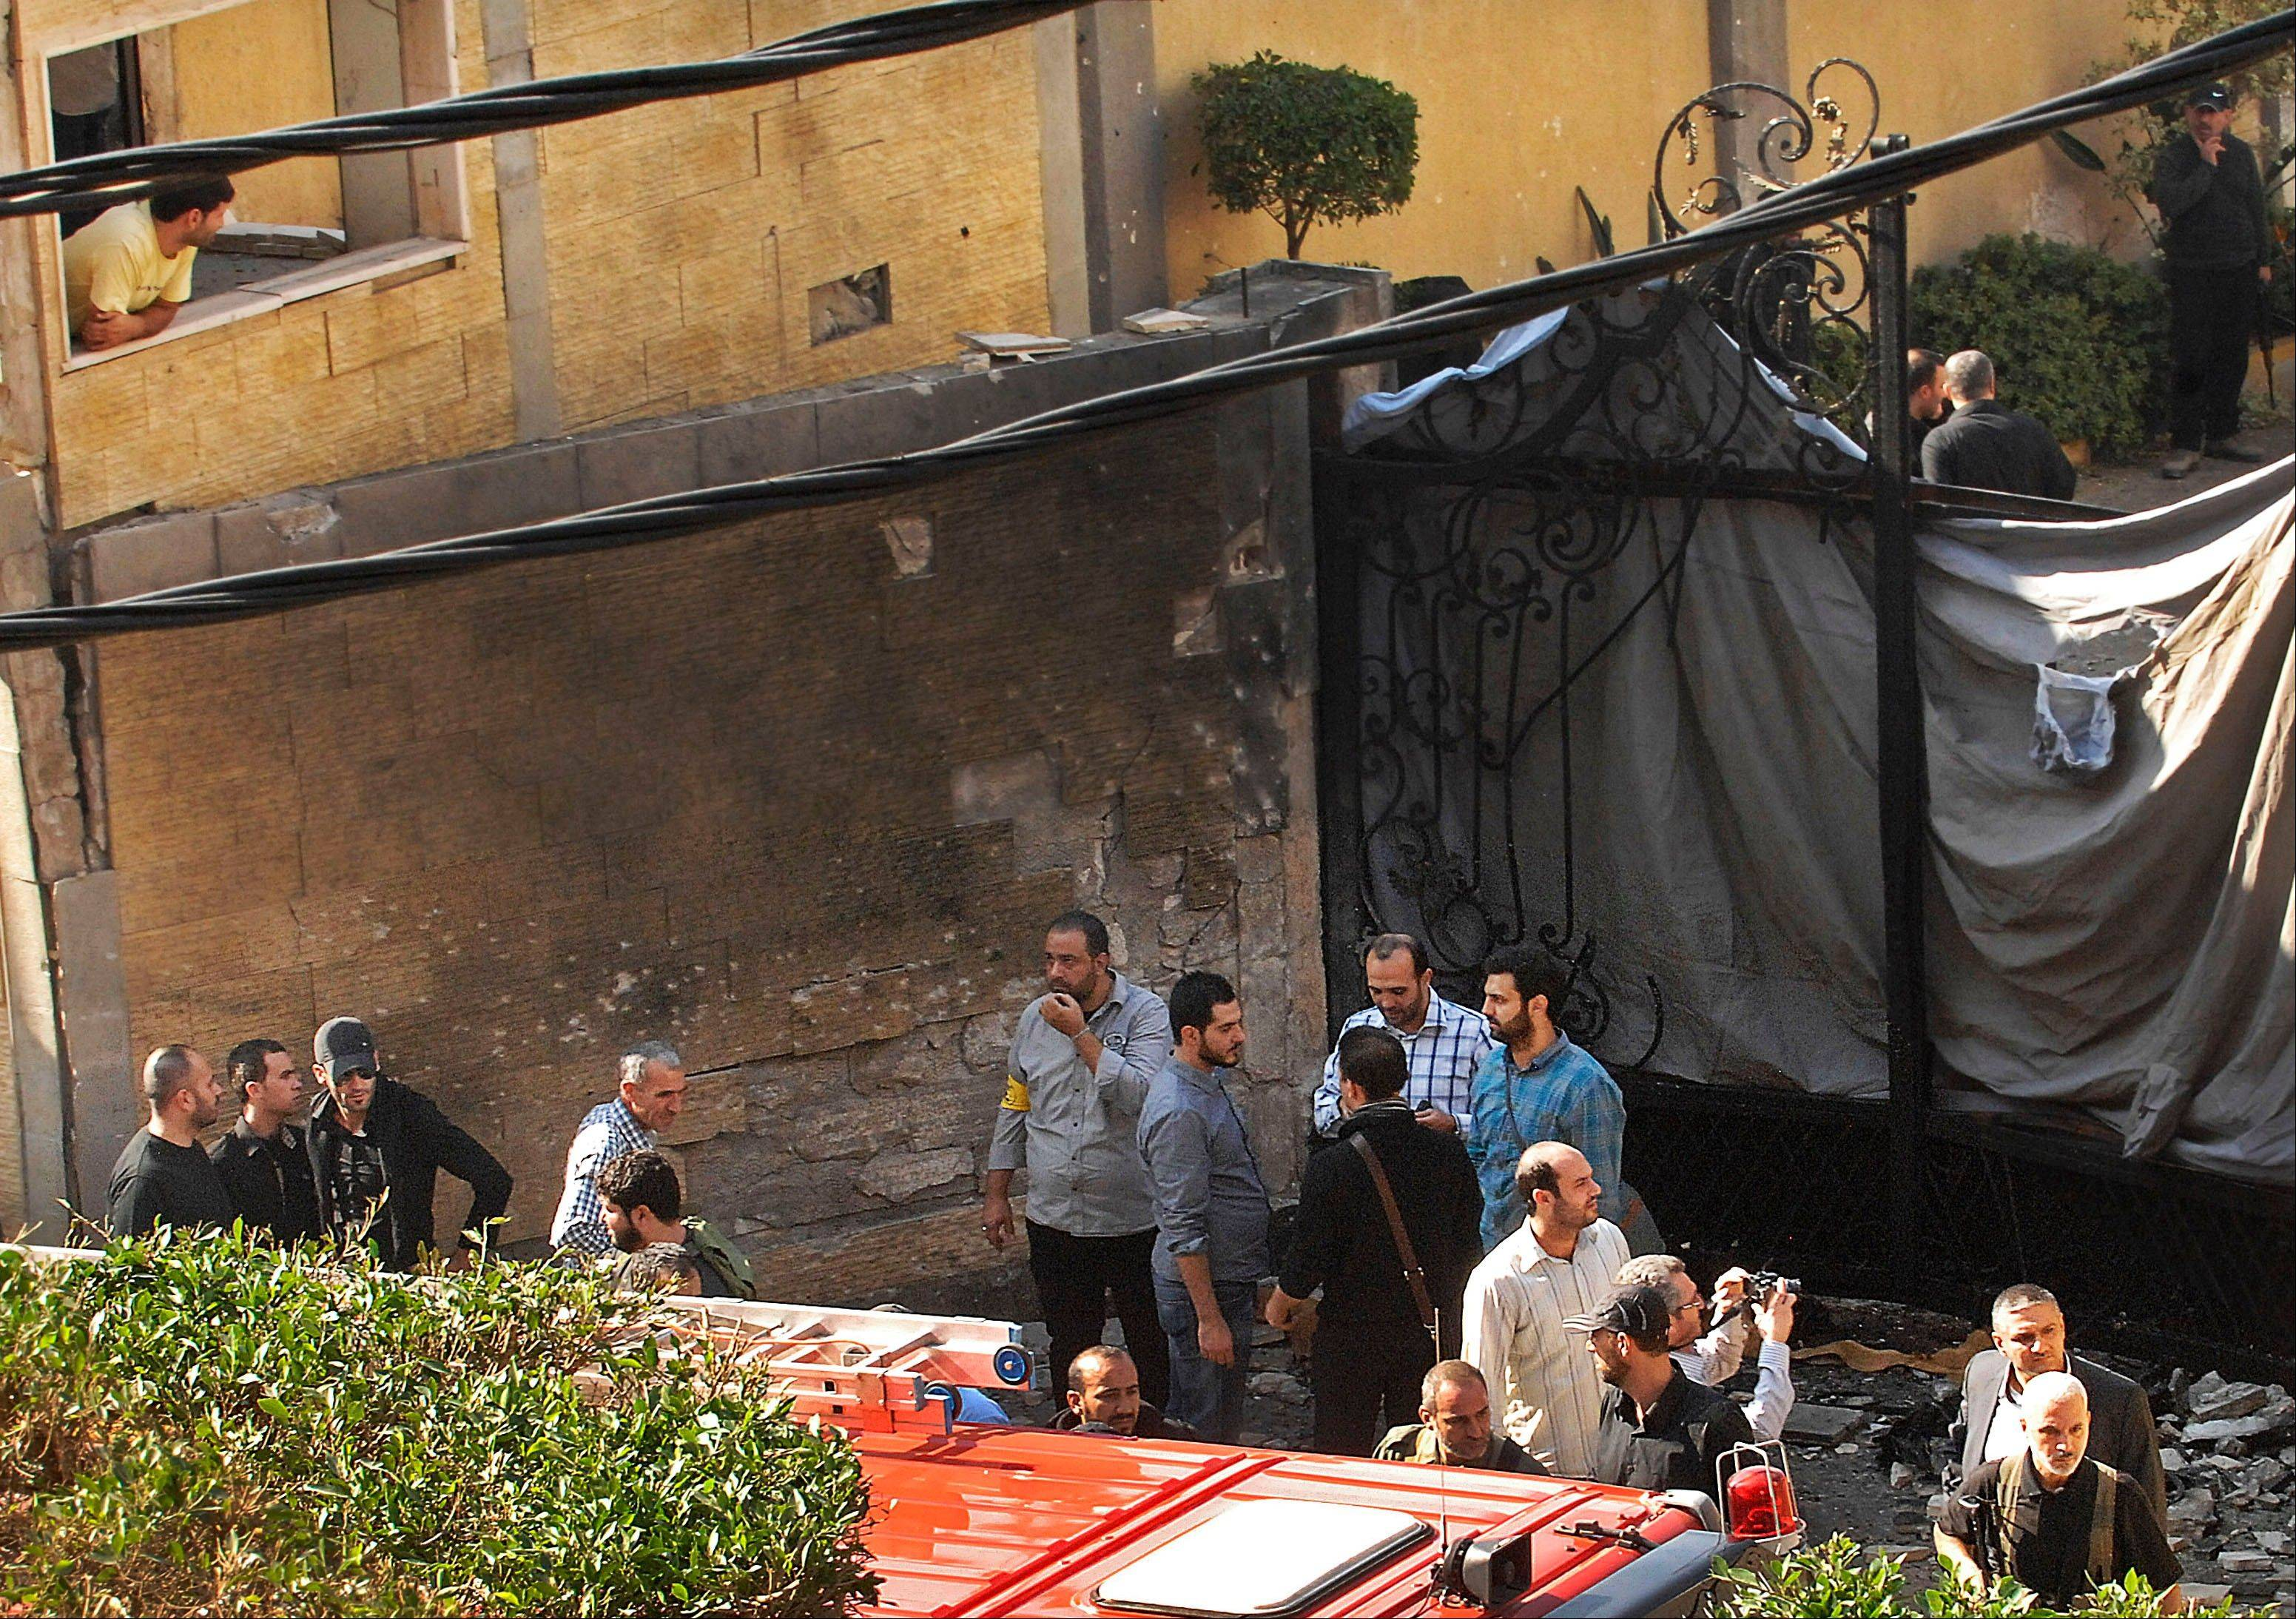 Private security officers gather Tuesday at the damaged entrance of the Iranian Embassy, which was attacked by a suicide bomber, in Beirut, Lebanon. Twin suicide bombings struck outside the Iranian Embassy in the Lebanese capital on Tuesday, killing nearly two dozen, including the Iranian cultural attache, and wounding dozens more in one of the worst bombings to target the predominantly Shiite area in southern Beirut.